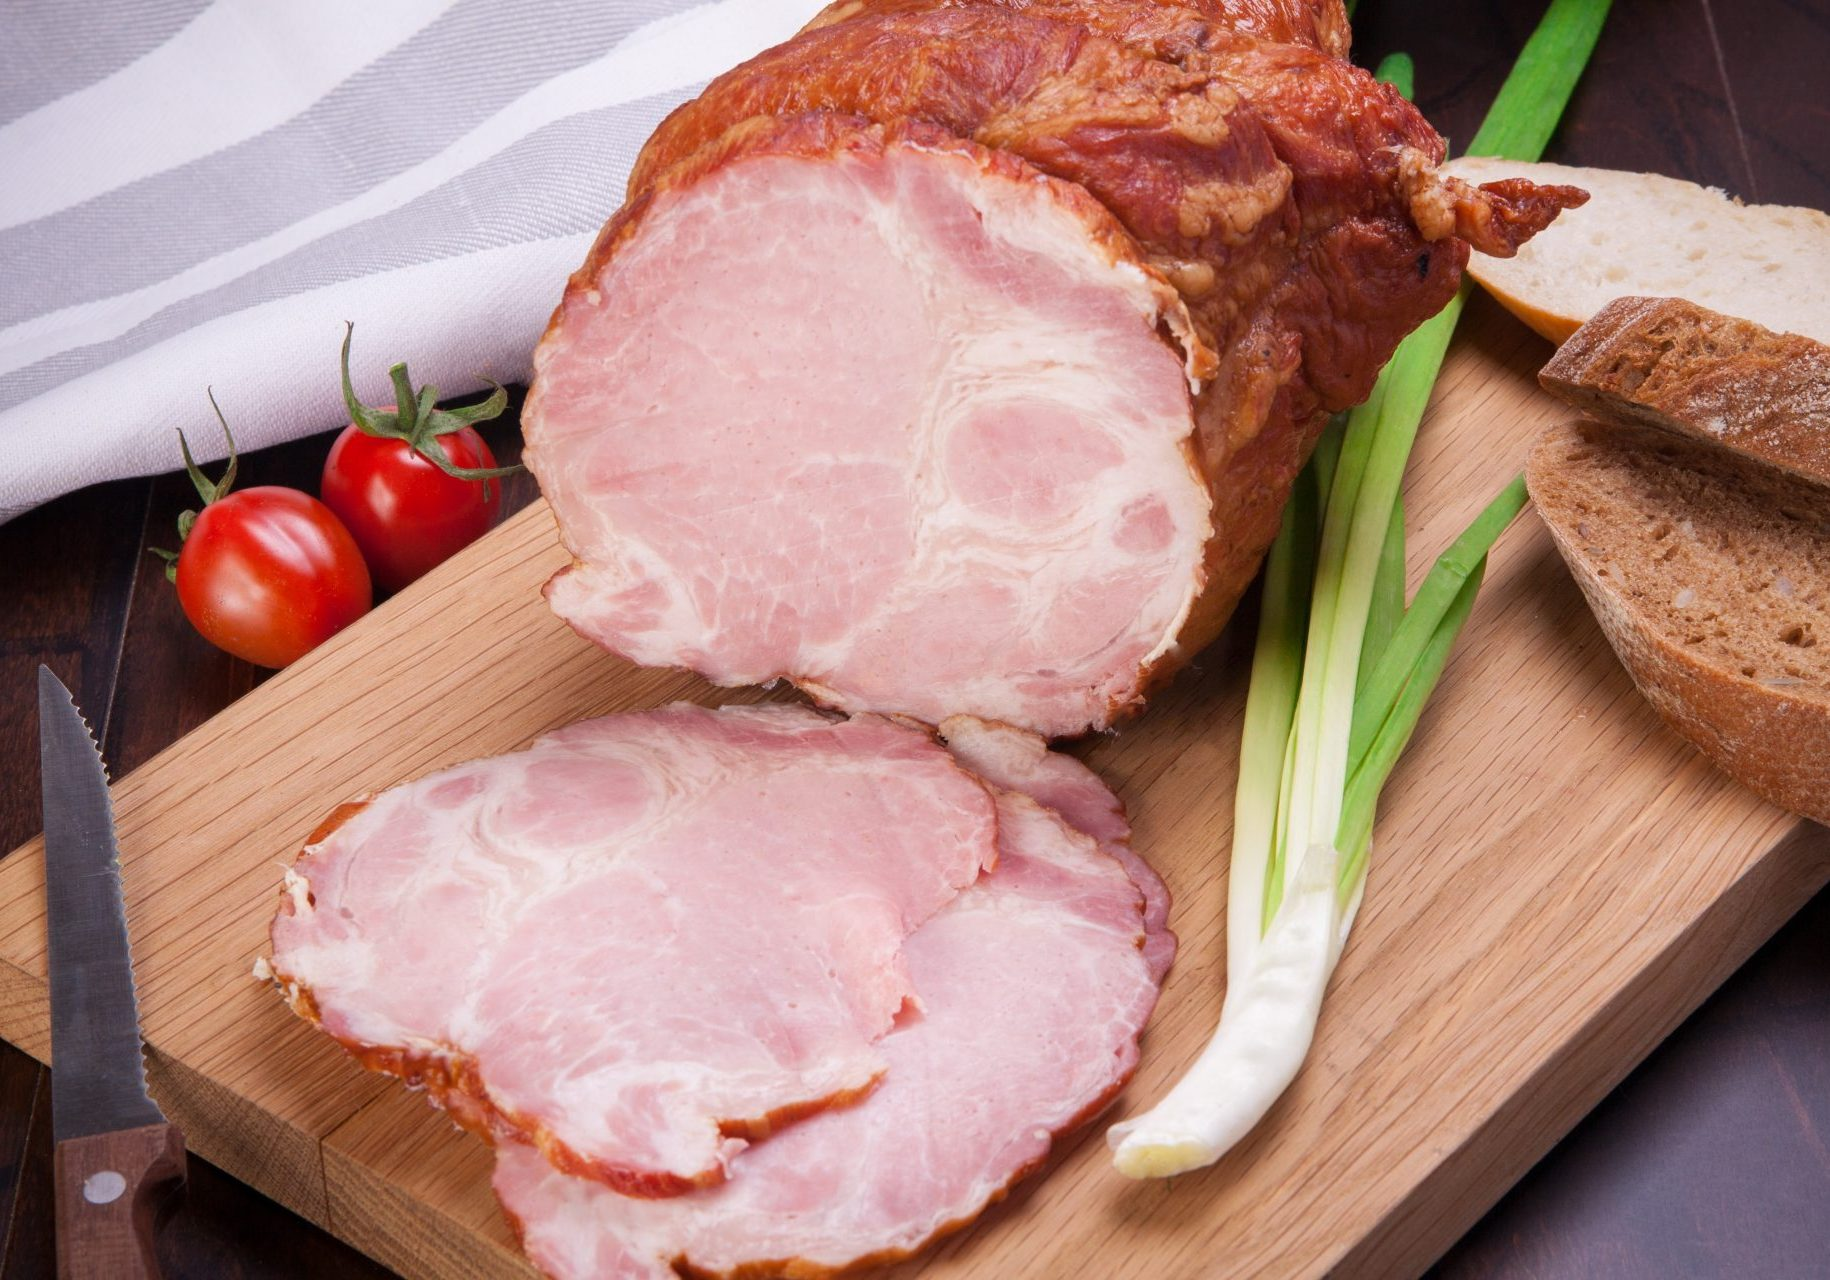 Ham meat with leek and tomatoes lying on a wooden board